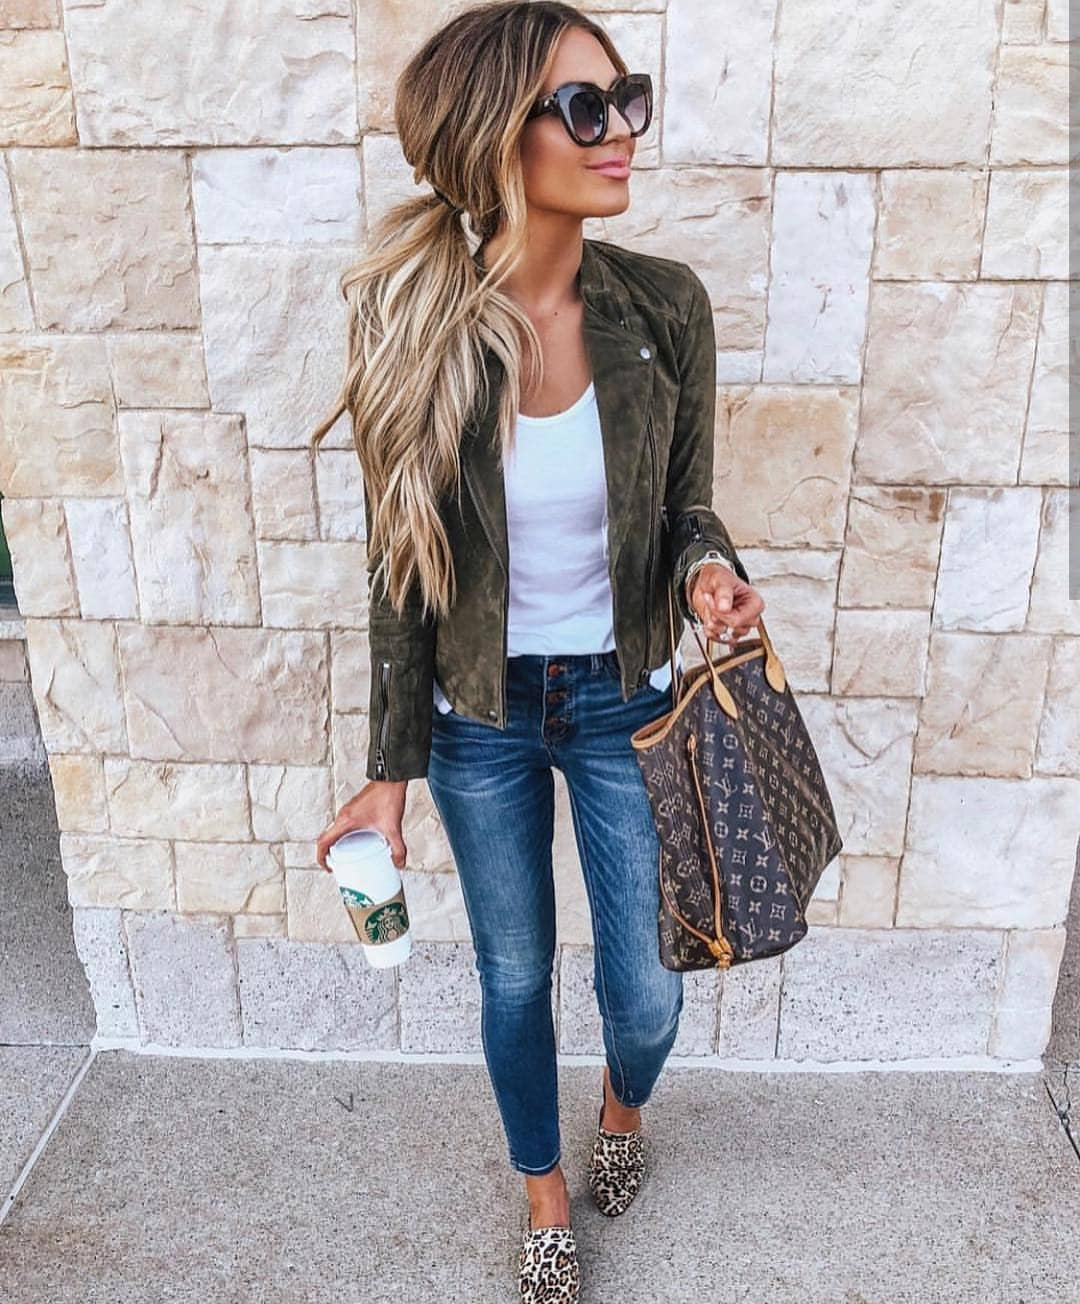 Smart Casual Combo For Spring: Suede Green Jacket And Blue Jeans 2020